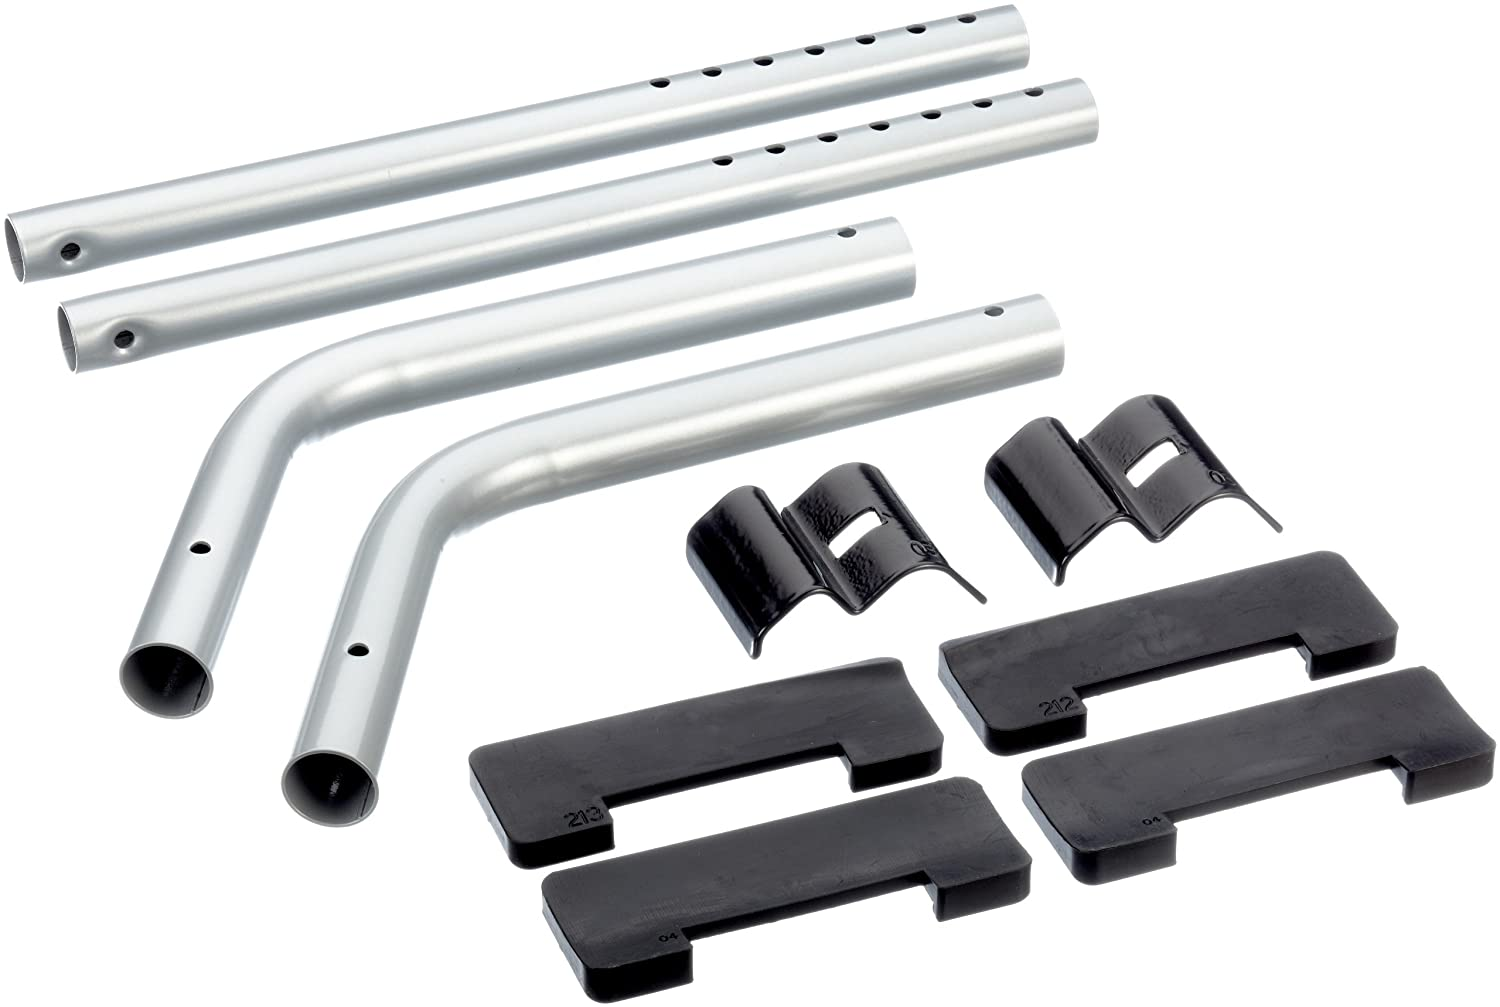 Thule Backpac 973231 Bike Carrier Adaptor Kit for 3rd Bike